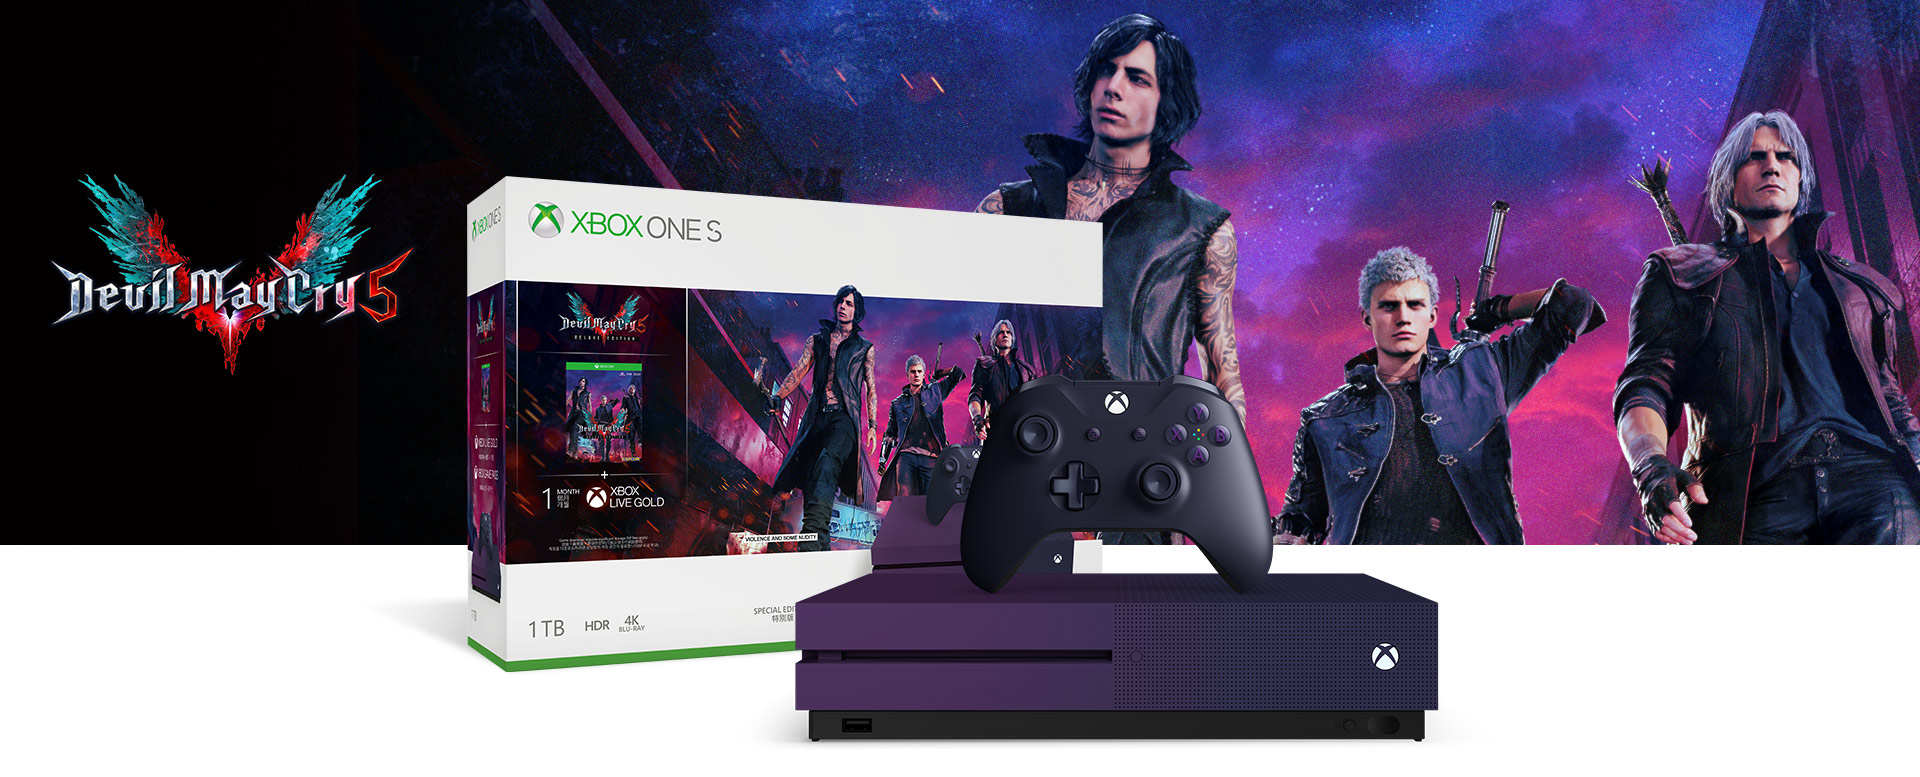 Xbox One S console in front of a hardware bundle box featuring Devil May Cry 5 art